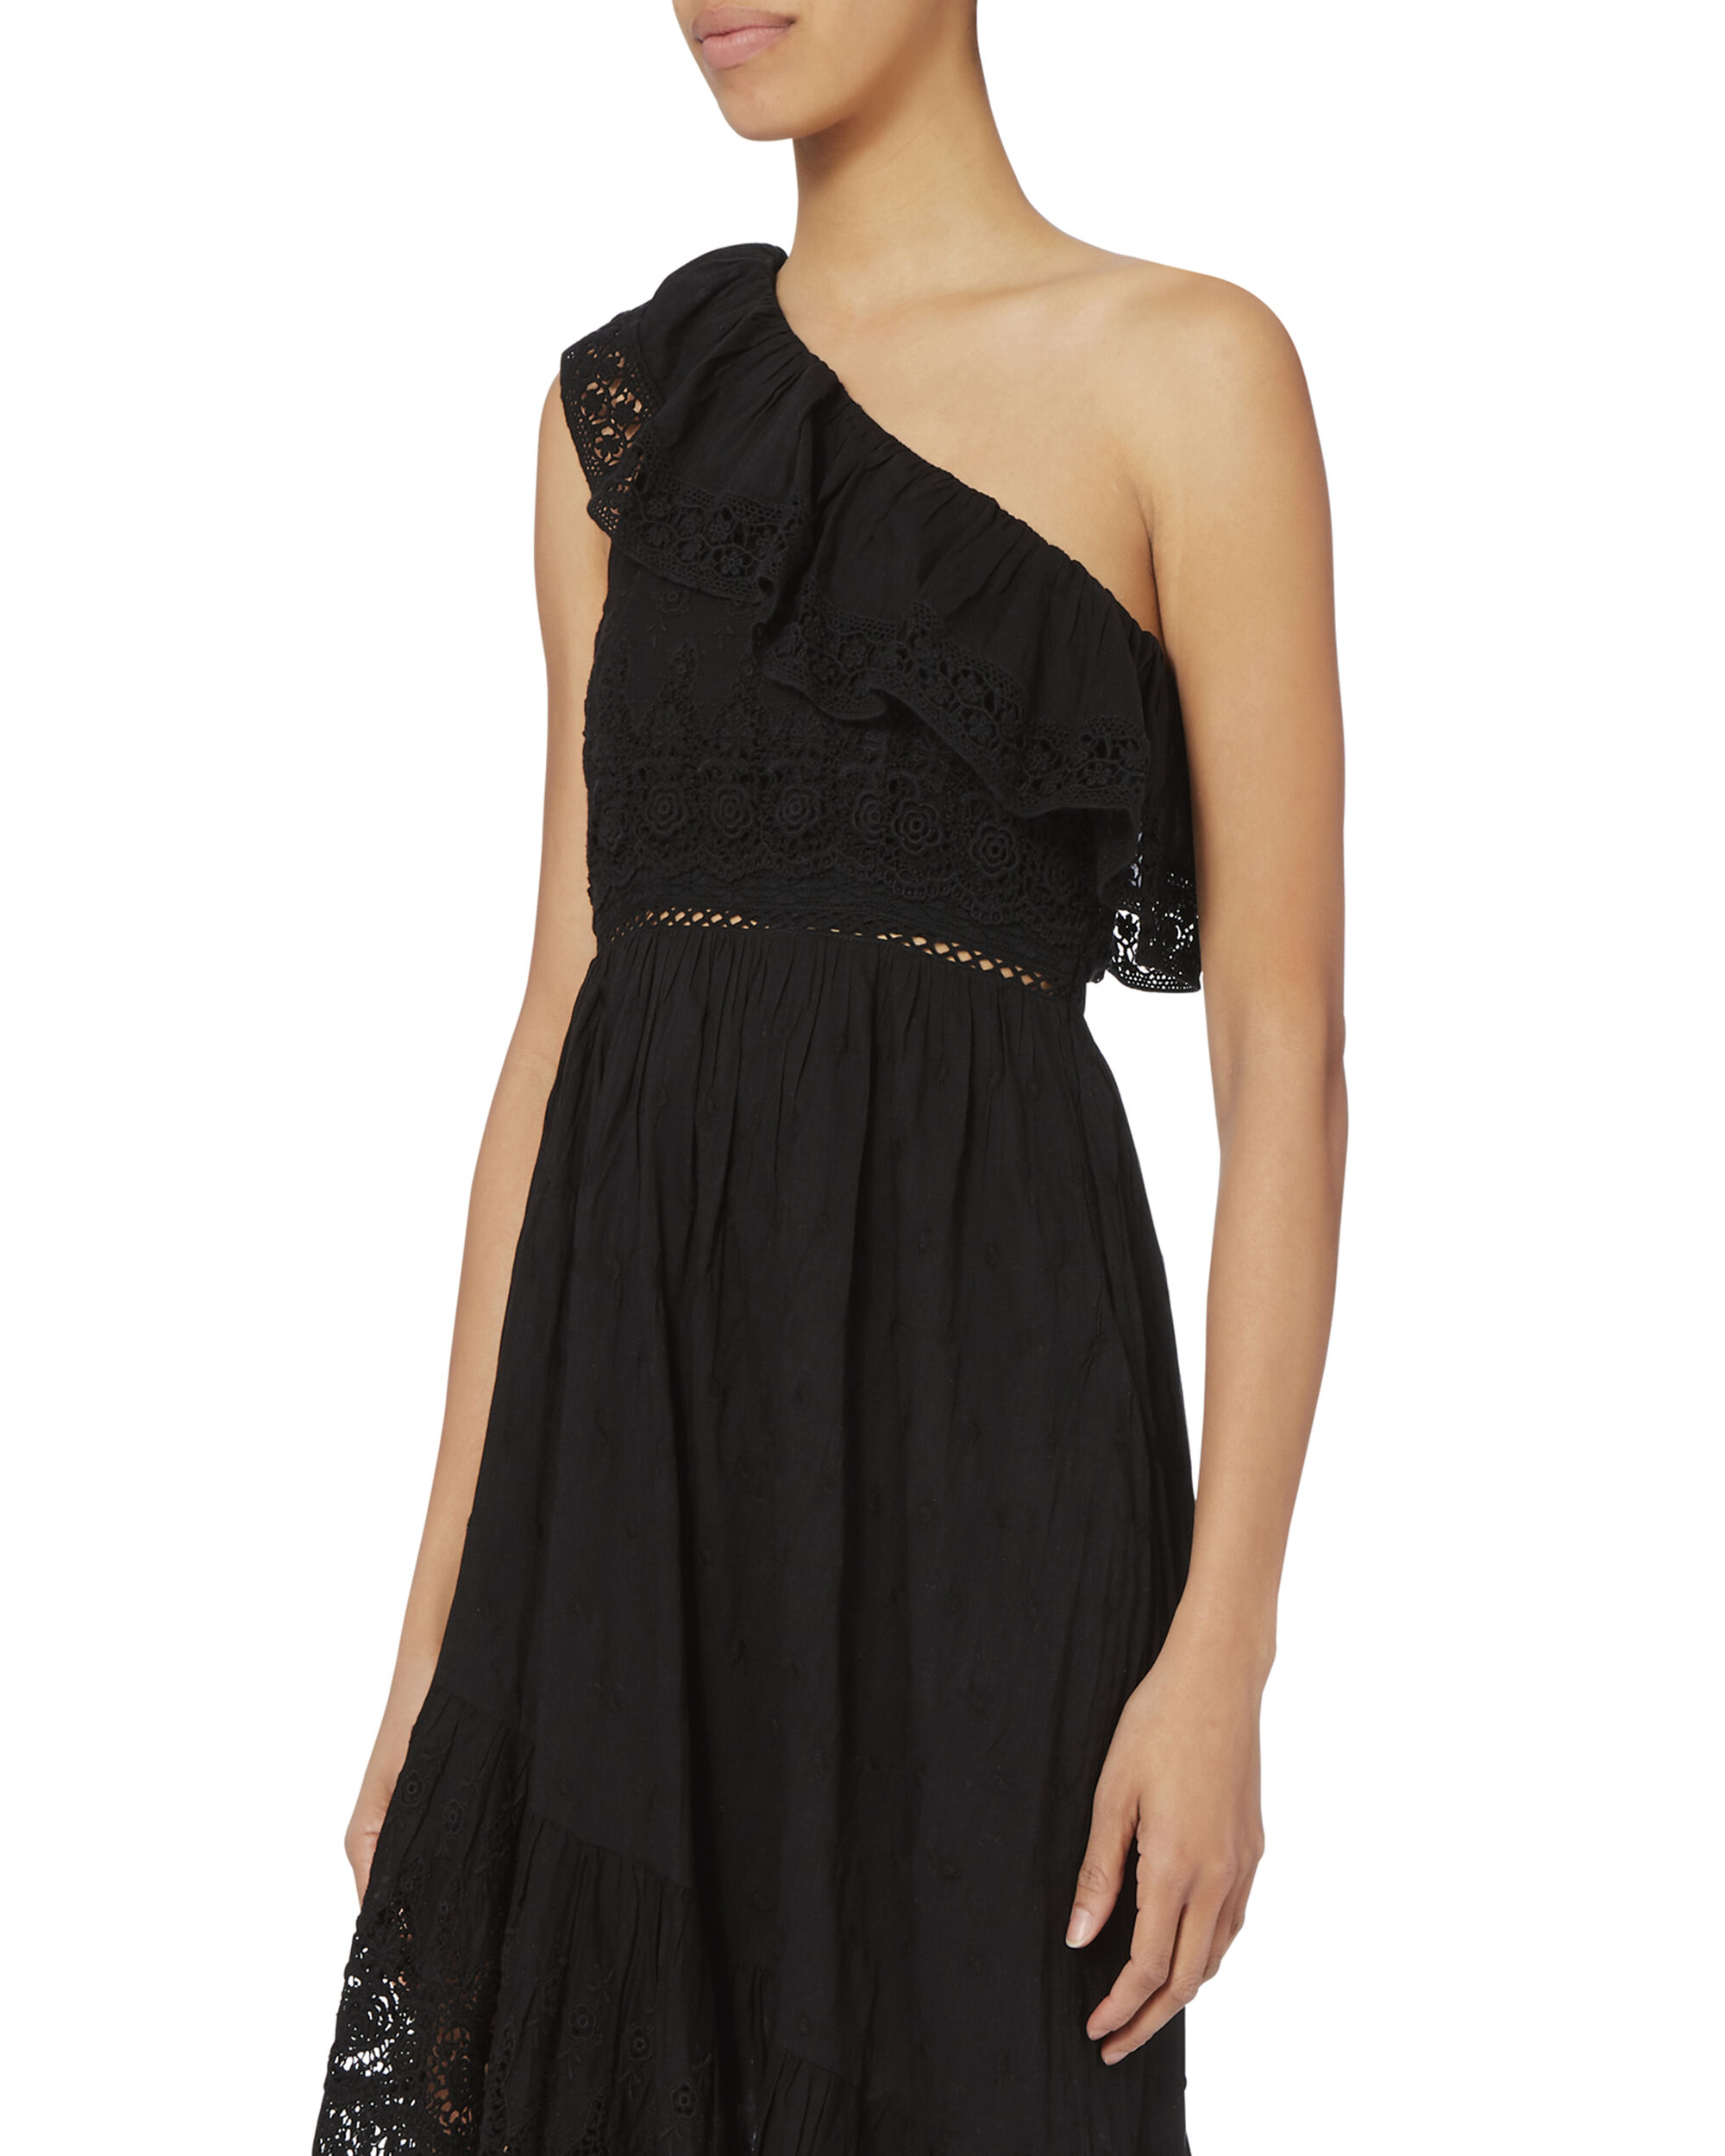 Pamela One Shoulder Ruffle Dress, BLACK, hi-res